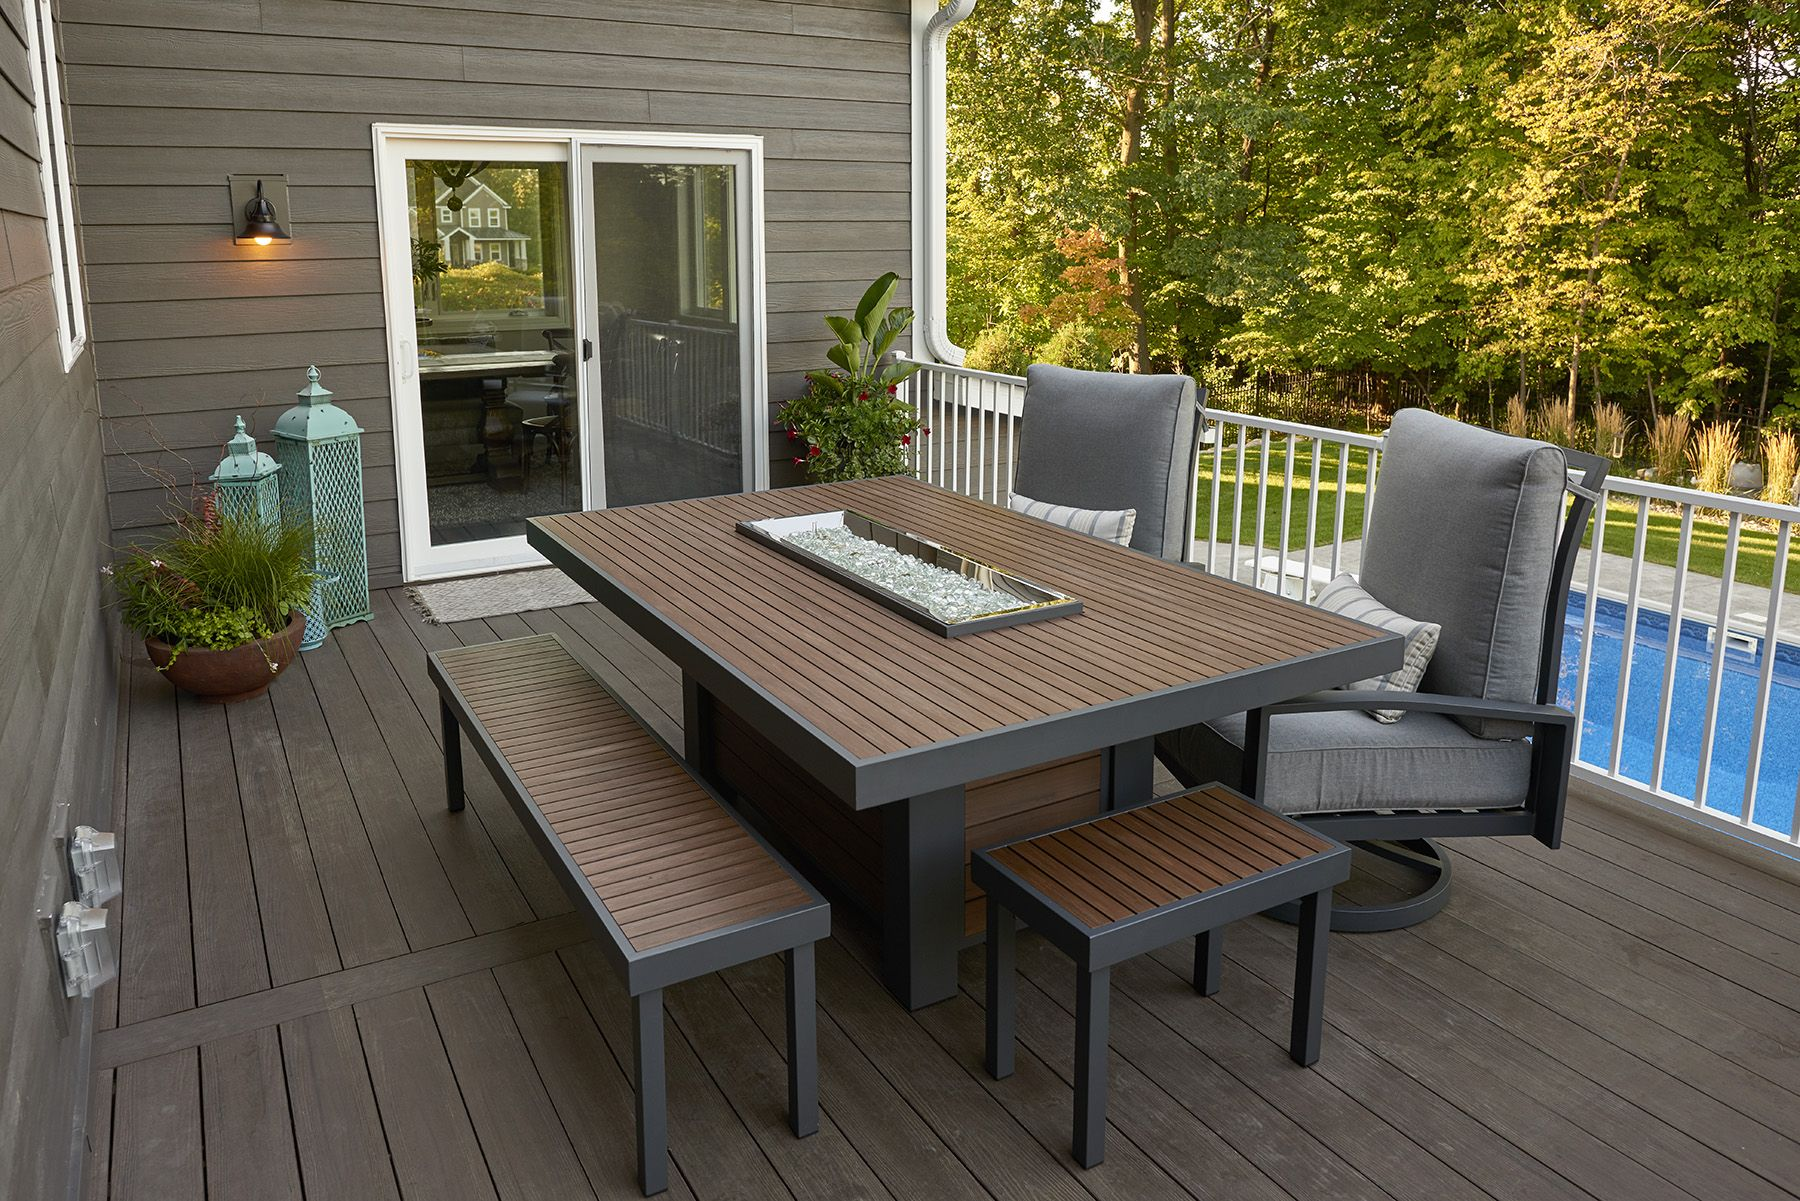 Kenwood Fire Pit Dining Table Features Durable Brown Composite Decking Top And Base Patio Gas Firepit Fire Pit Table